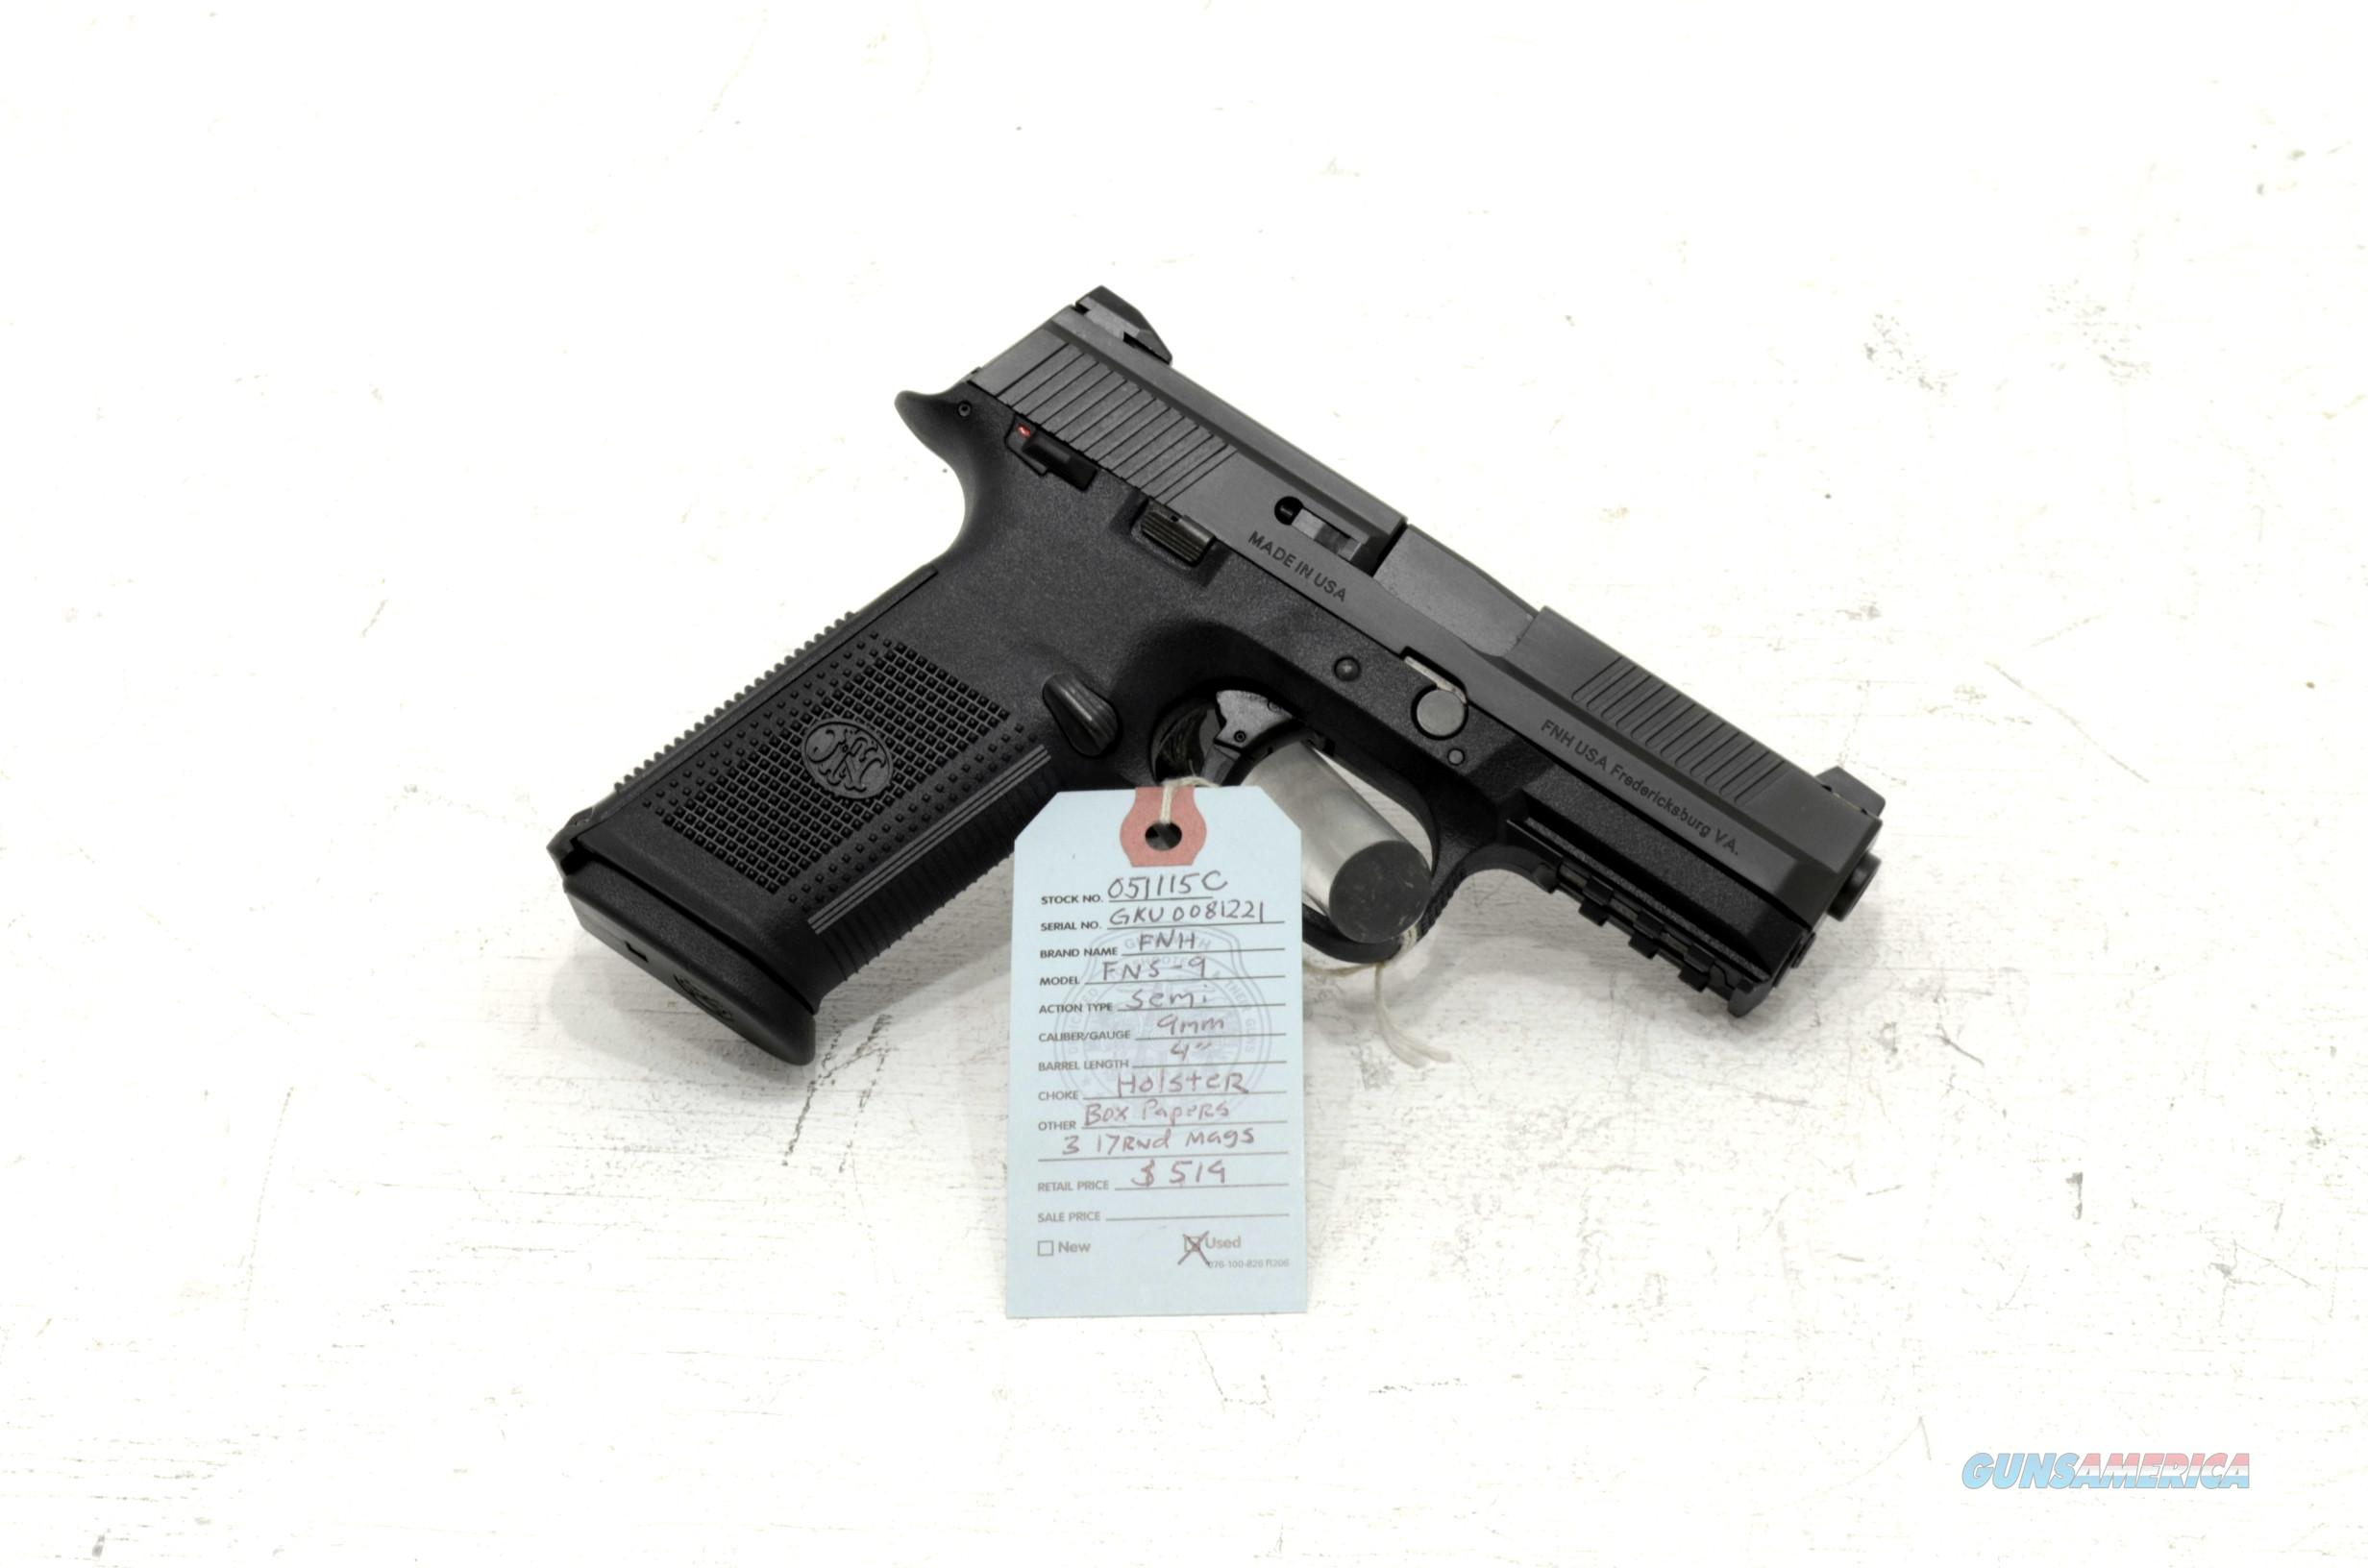 "FNH, FNS 9mm pistol 4"" barrel  Guns > Pistols > FNH - Fabrique Nationale (FN) Pistols > FNS"